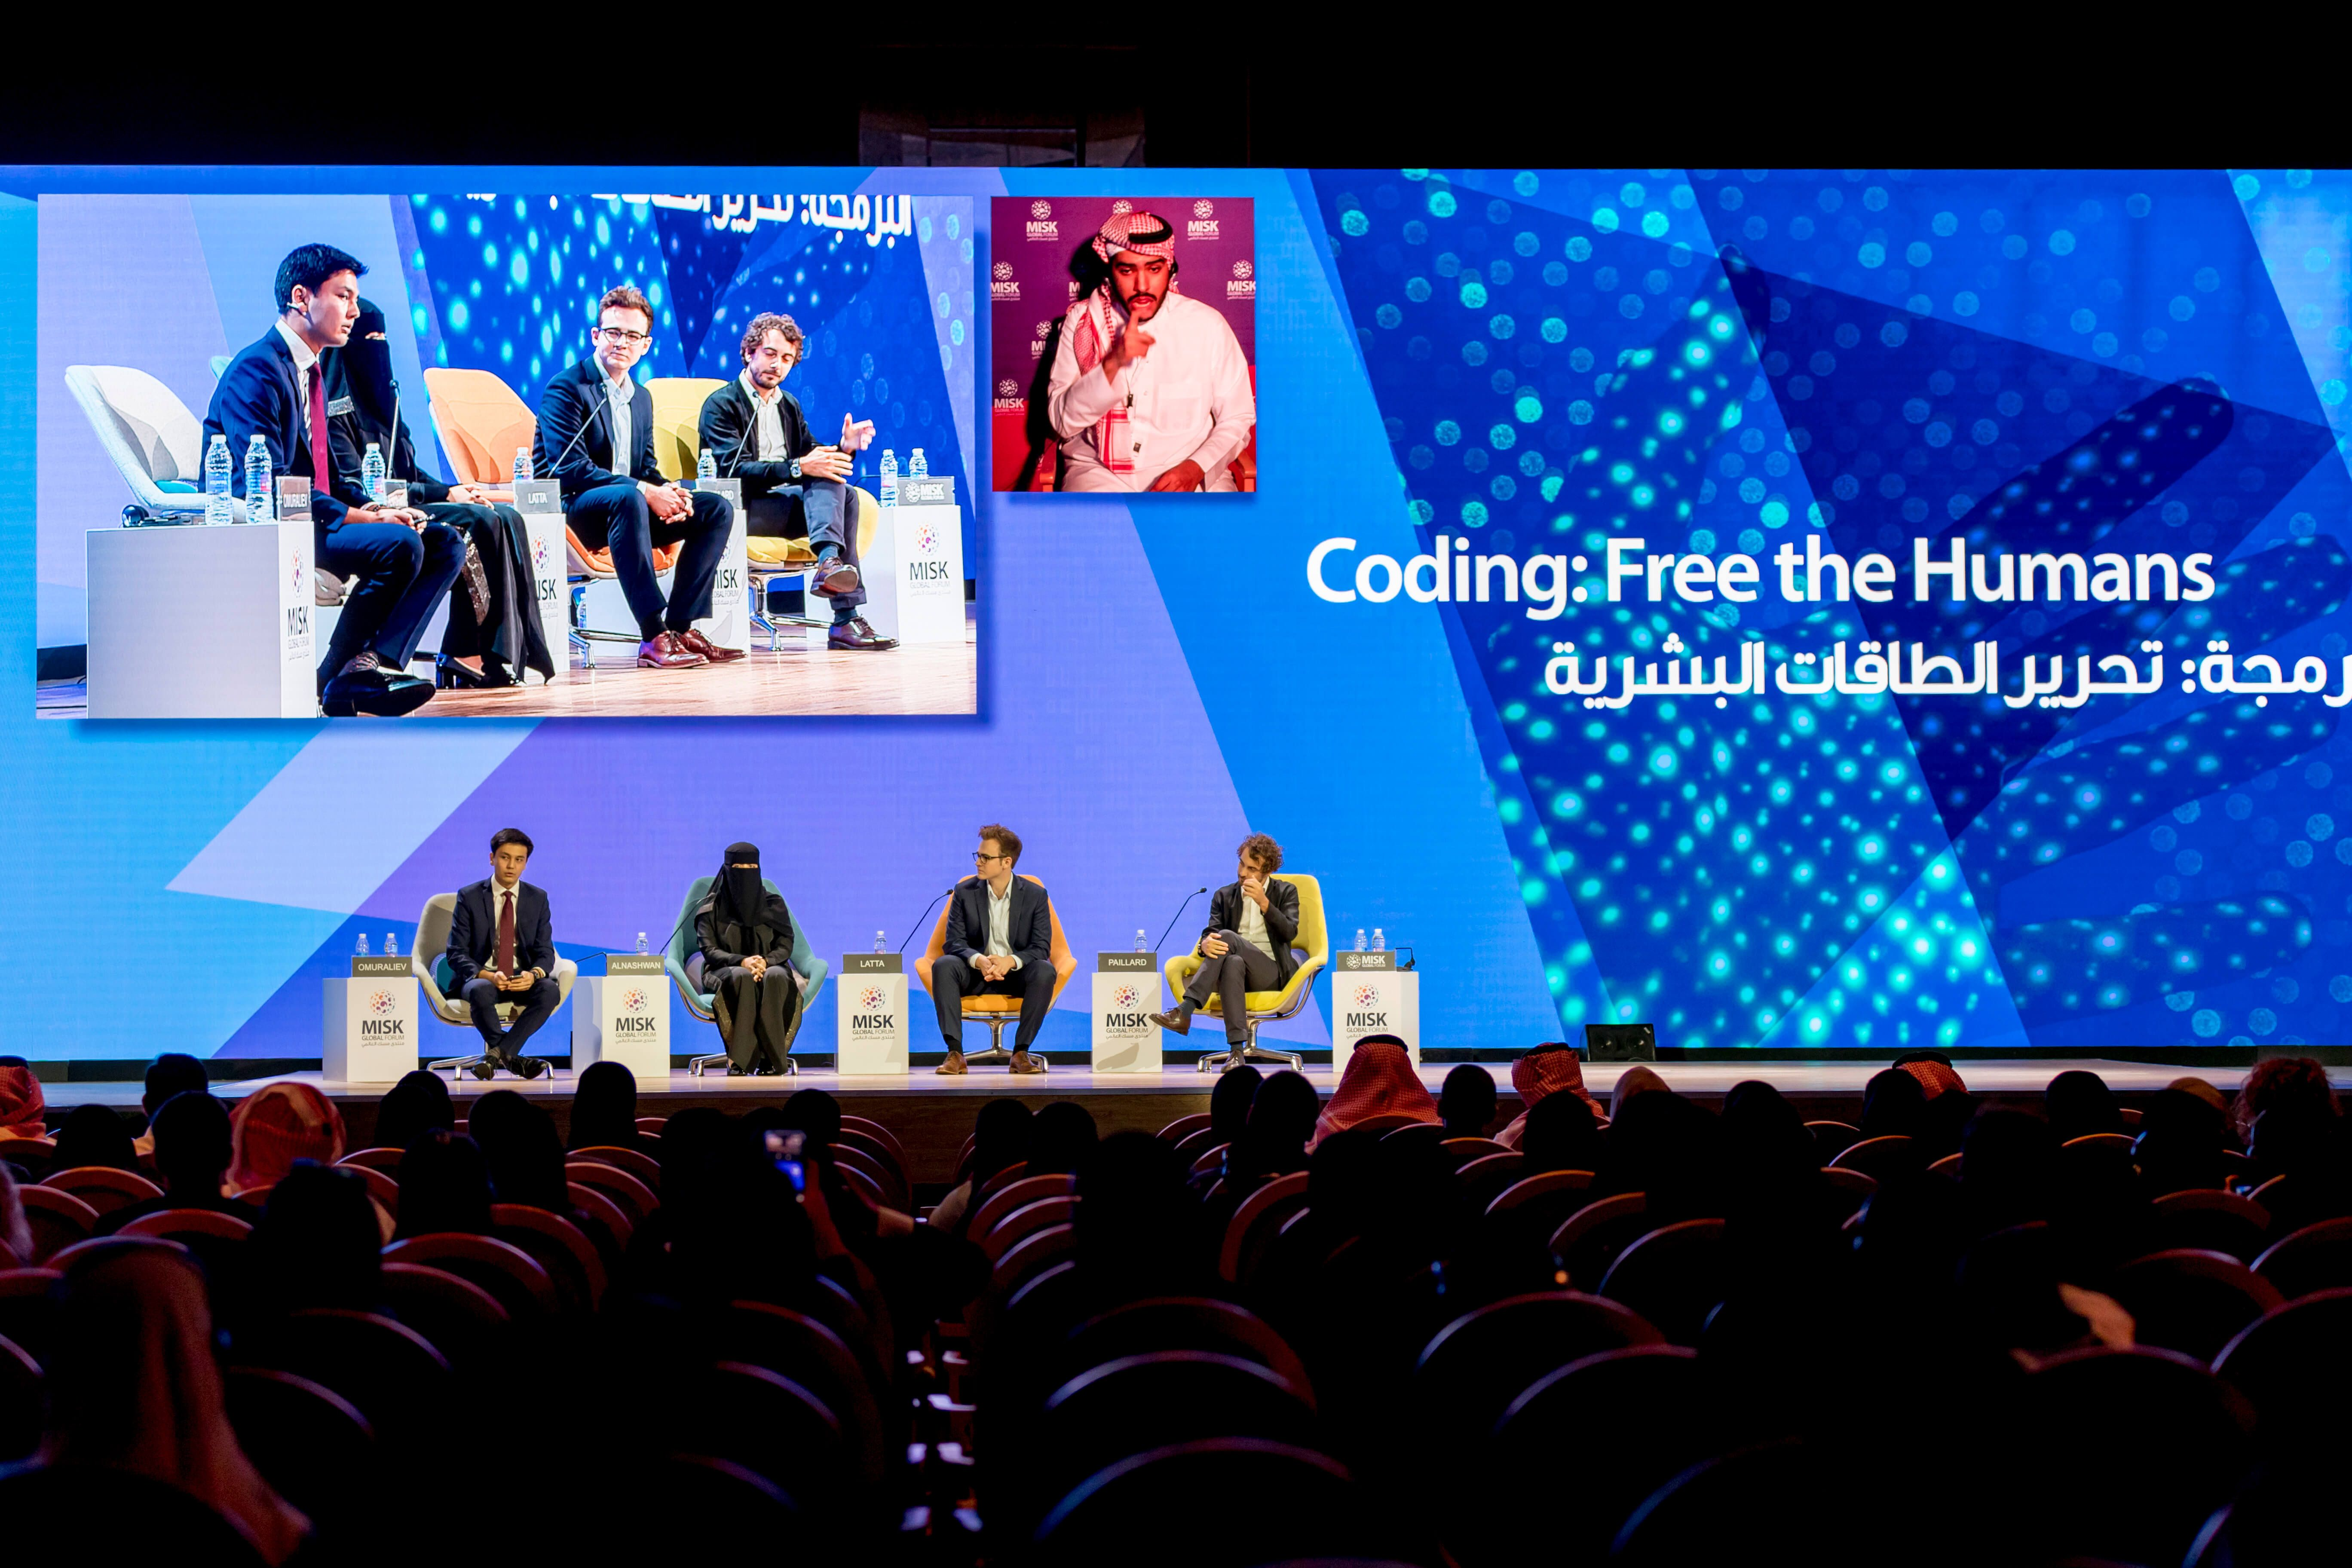 What we learned at Misk Global Forum